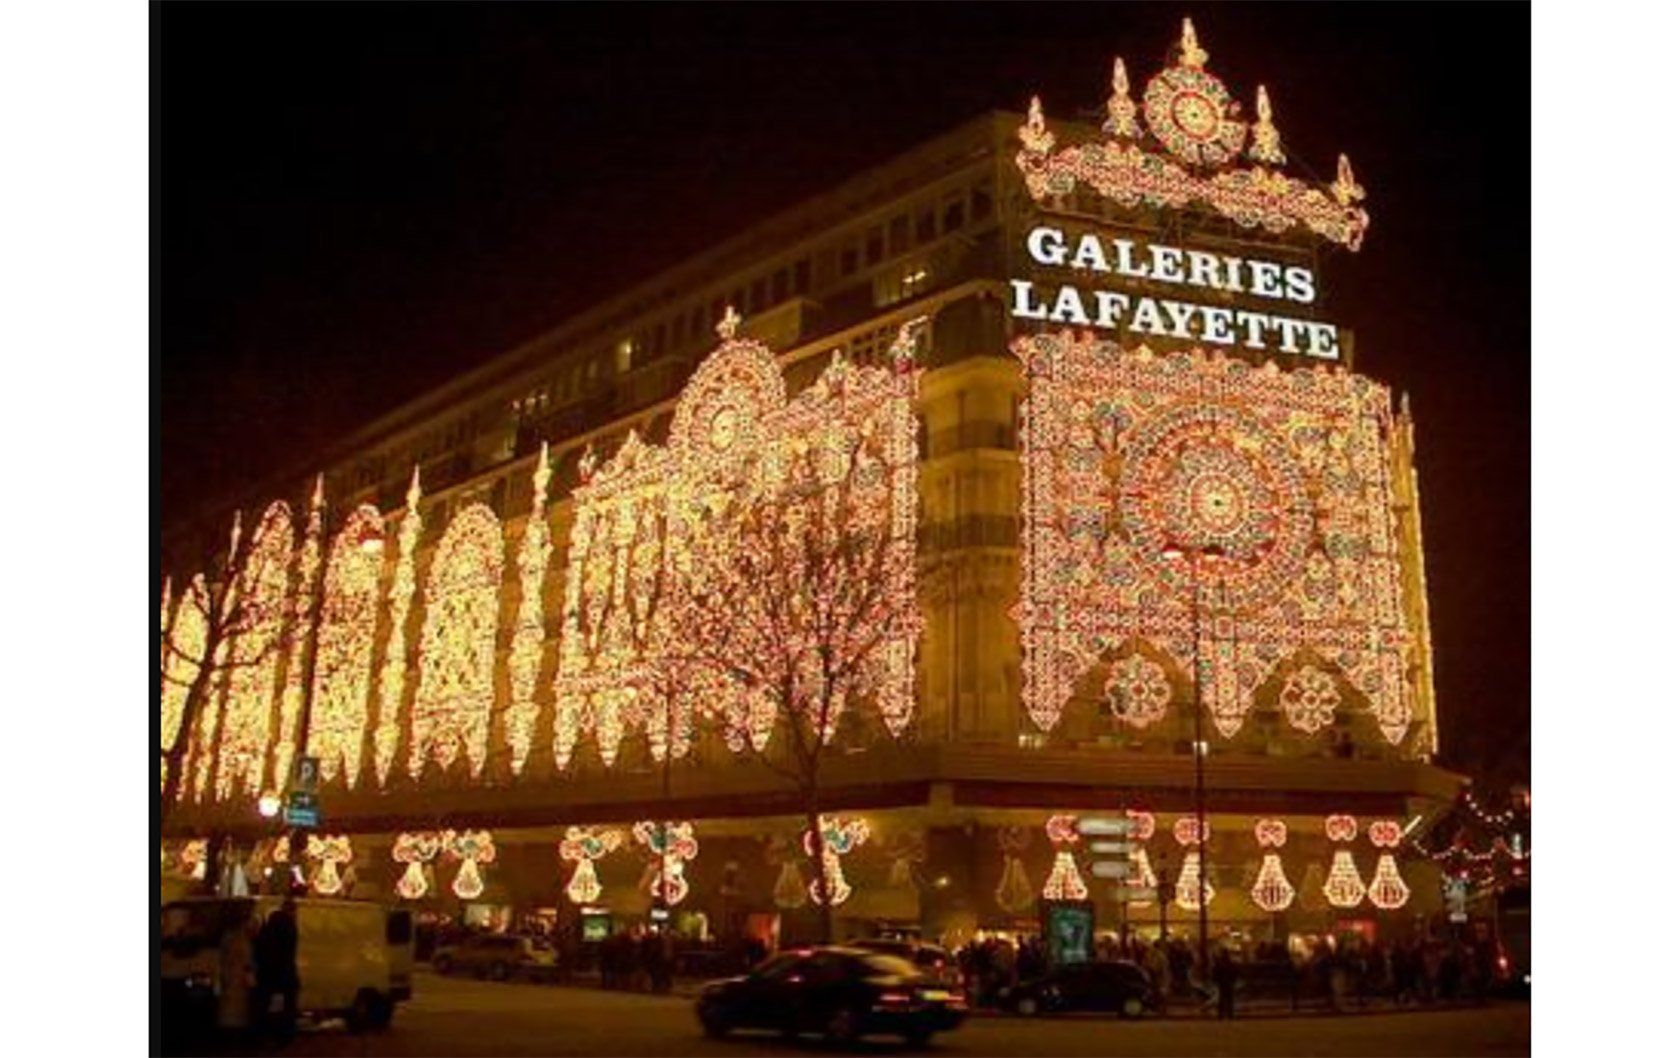 No Department Store Does Christmas Quite Like Galeries Lafayette In Paris With Its Incredible Lace Lighting Lafayette Paris Christmas In Paris Paris Shopping